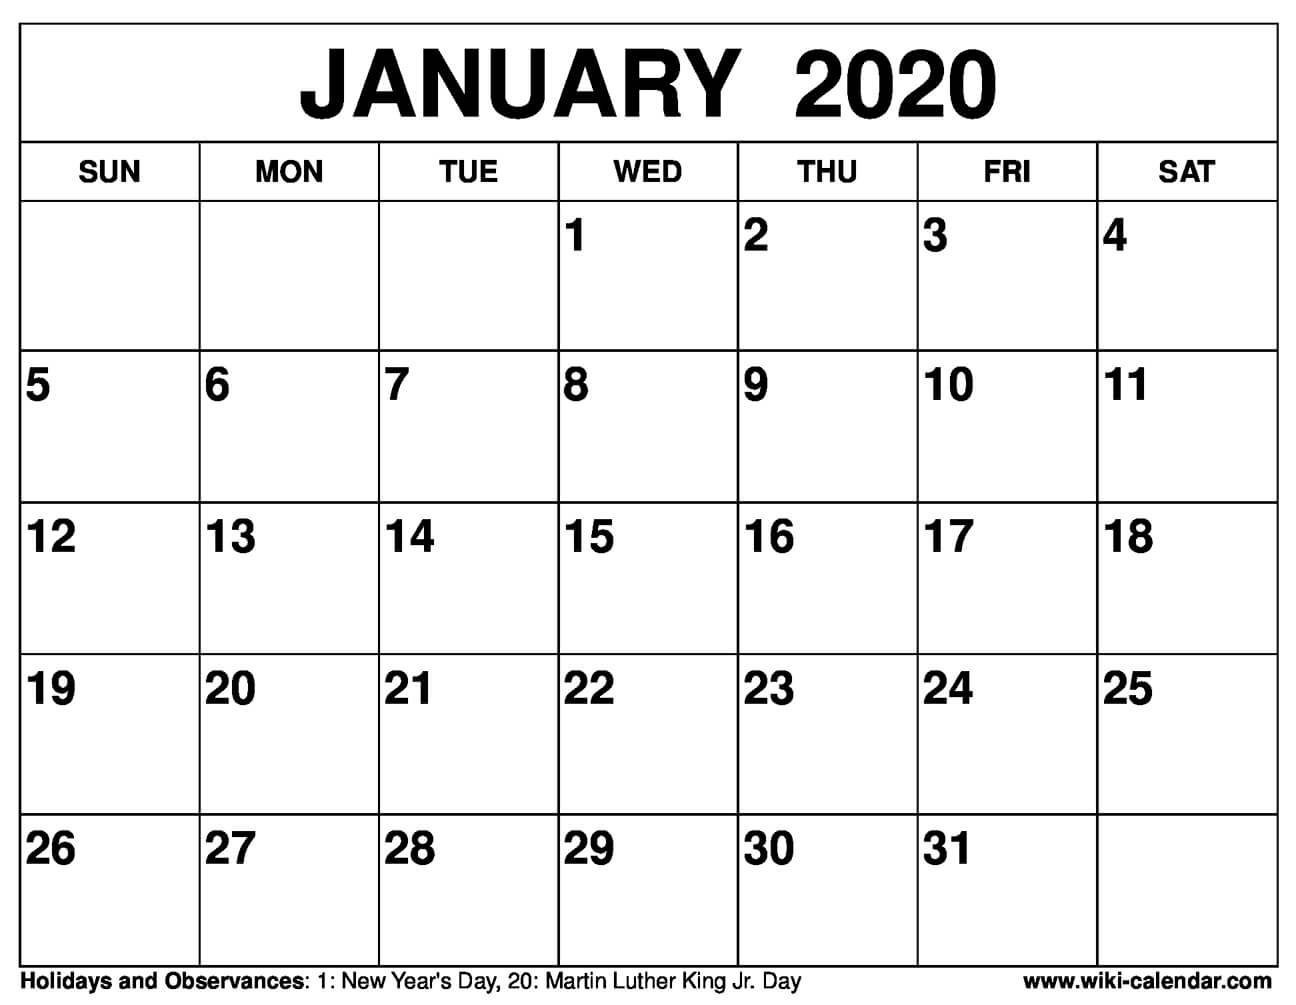 January Monthly Calendar 2020  Bolan.horizonconsulting.co within Calendar 2020 January